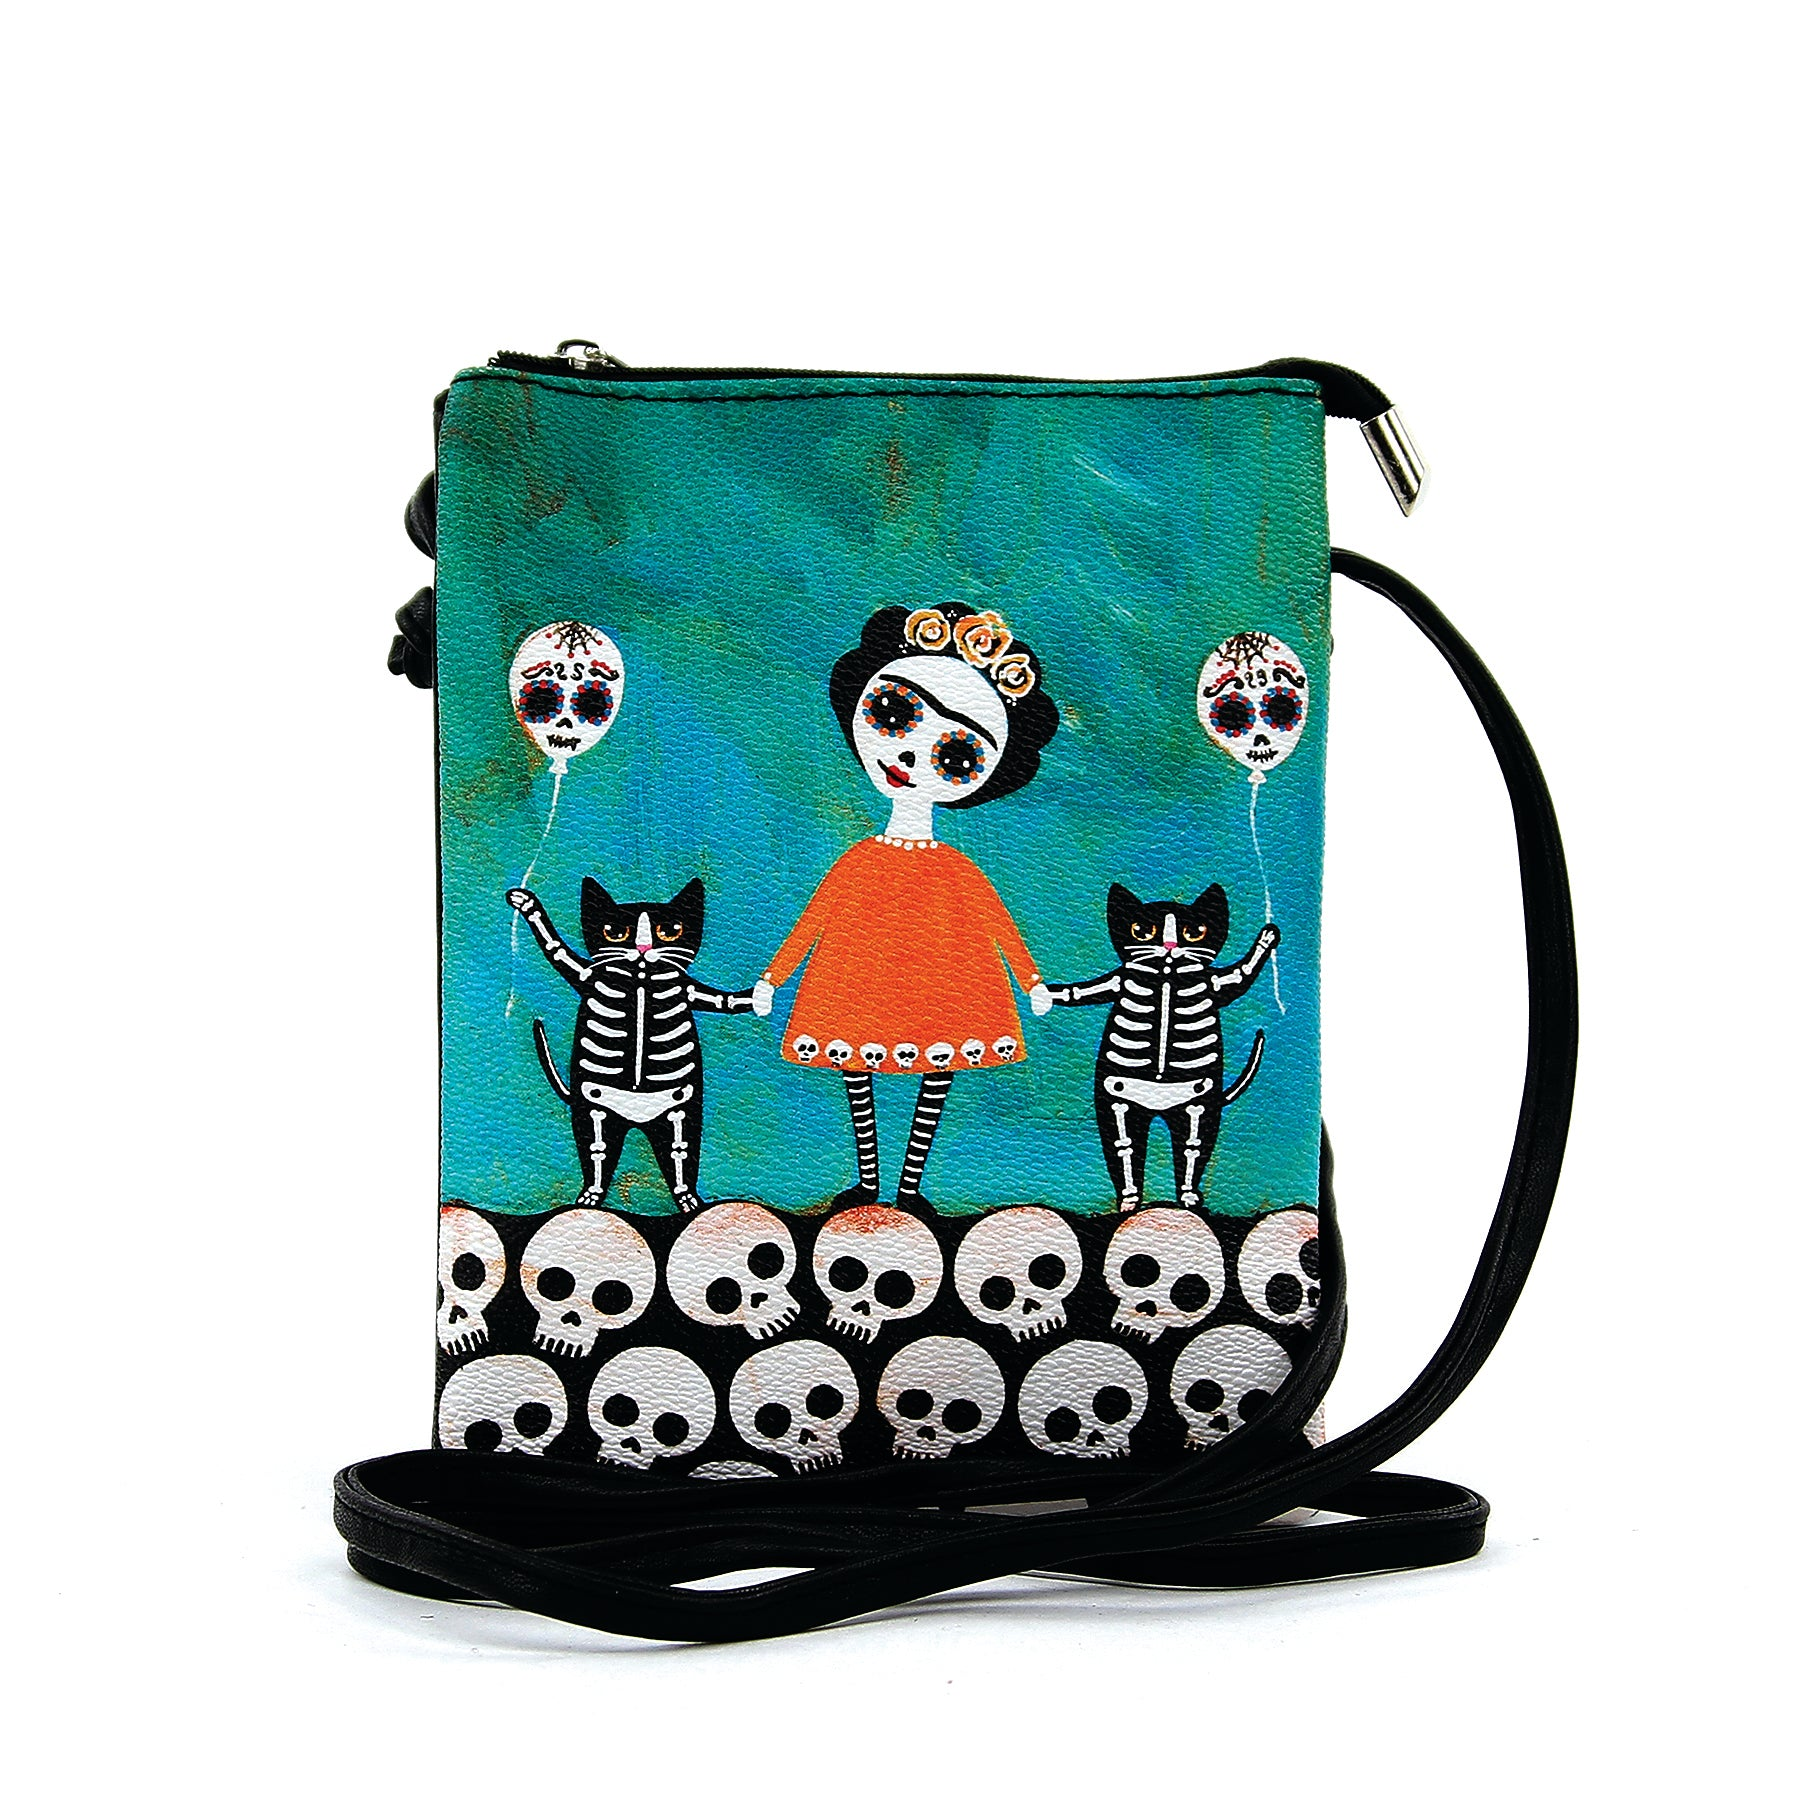 Orange Dress Skeleton Girl with Cats Crossbody Bag  in Vinyl Material front view